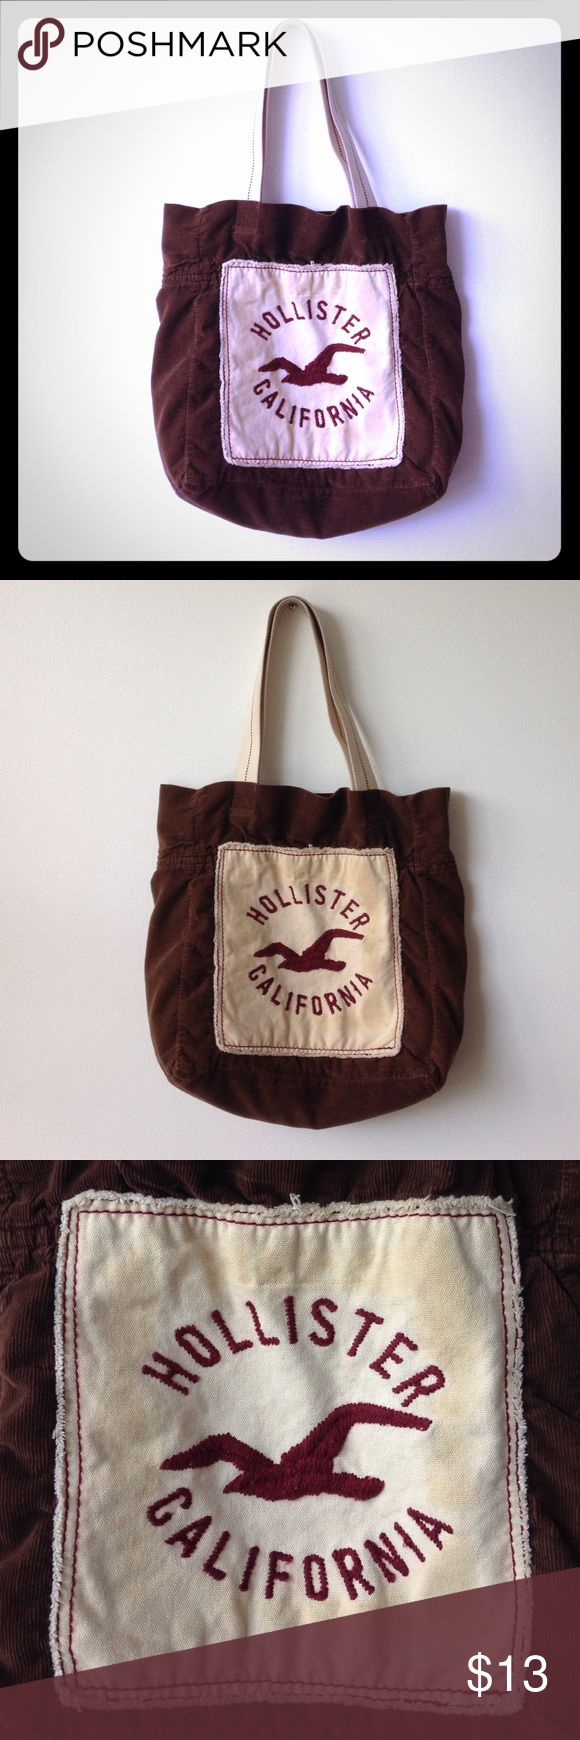 Hollister tote bag Hollister tote bag   Color: brown & tan & burgundy   (Used)  Distressed totebag from Hollister. This bag is perfect for the beach or for every day use ⭐️ Hollister Bags Totes